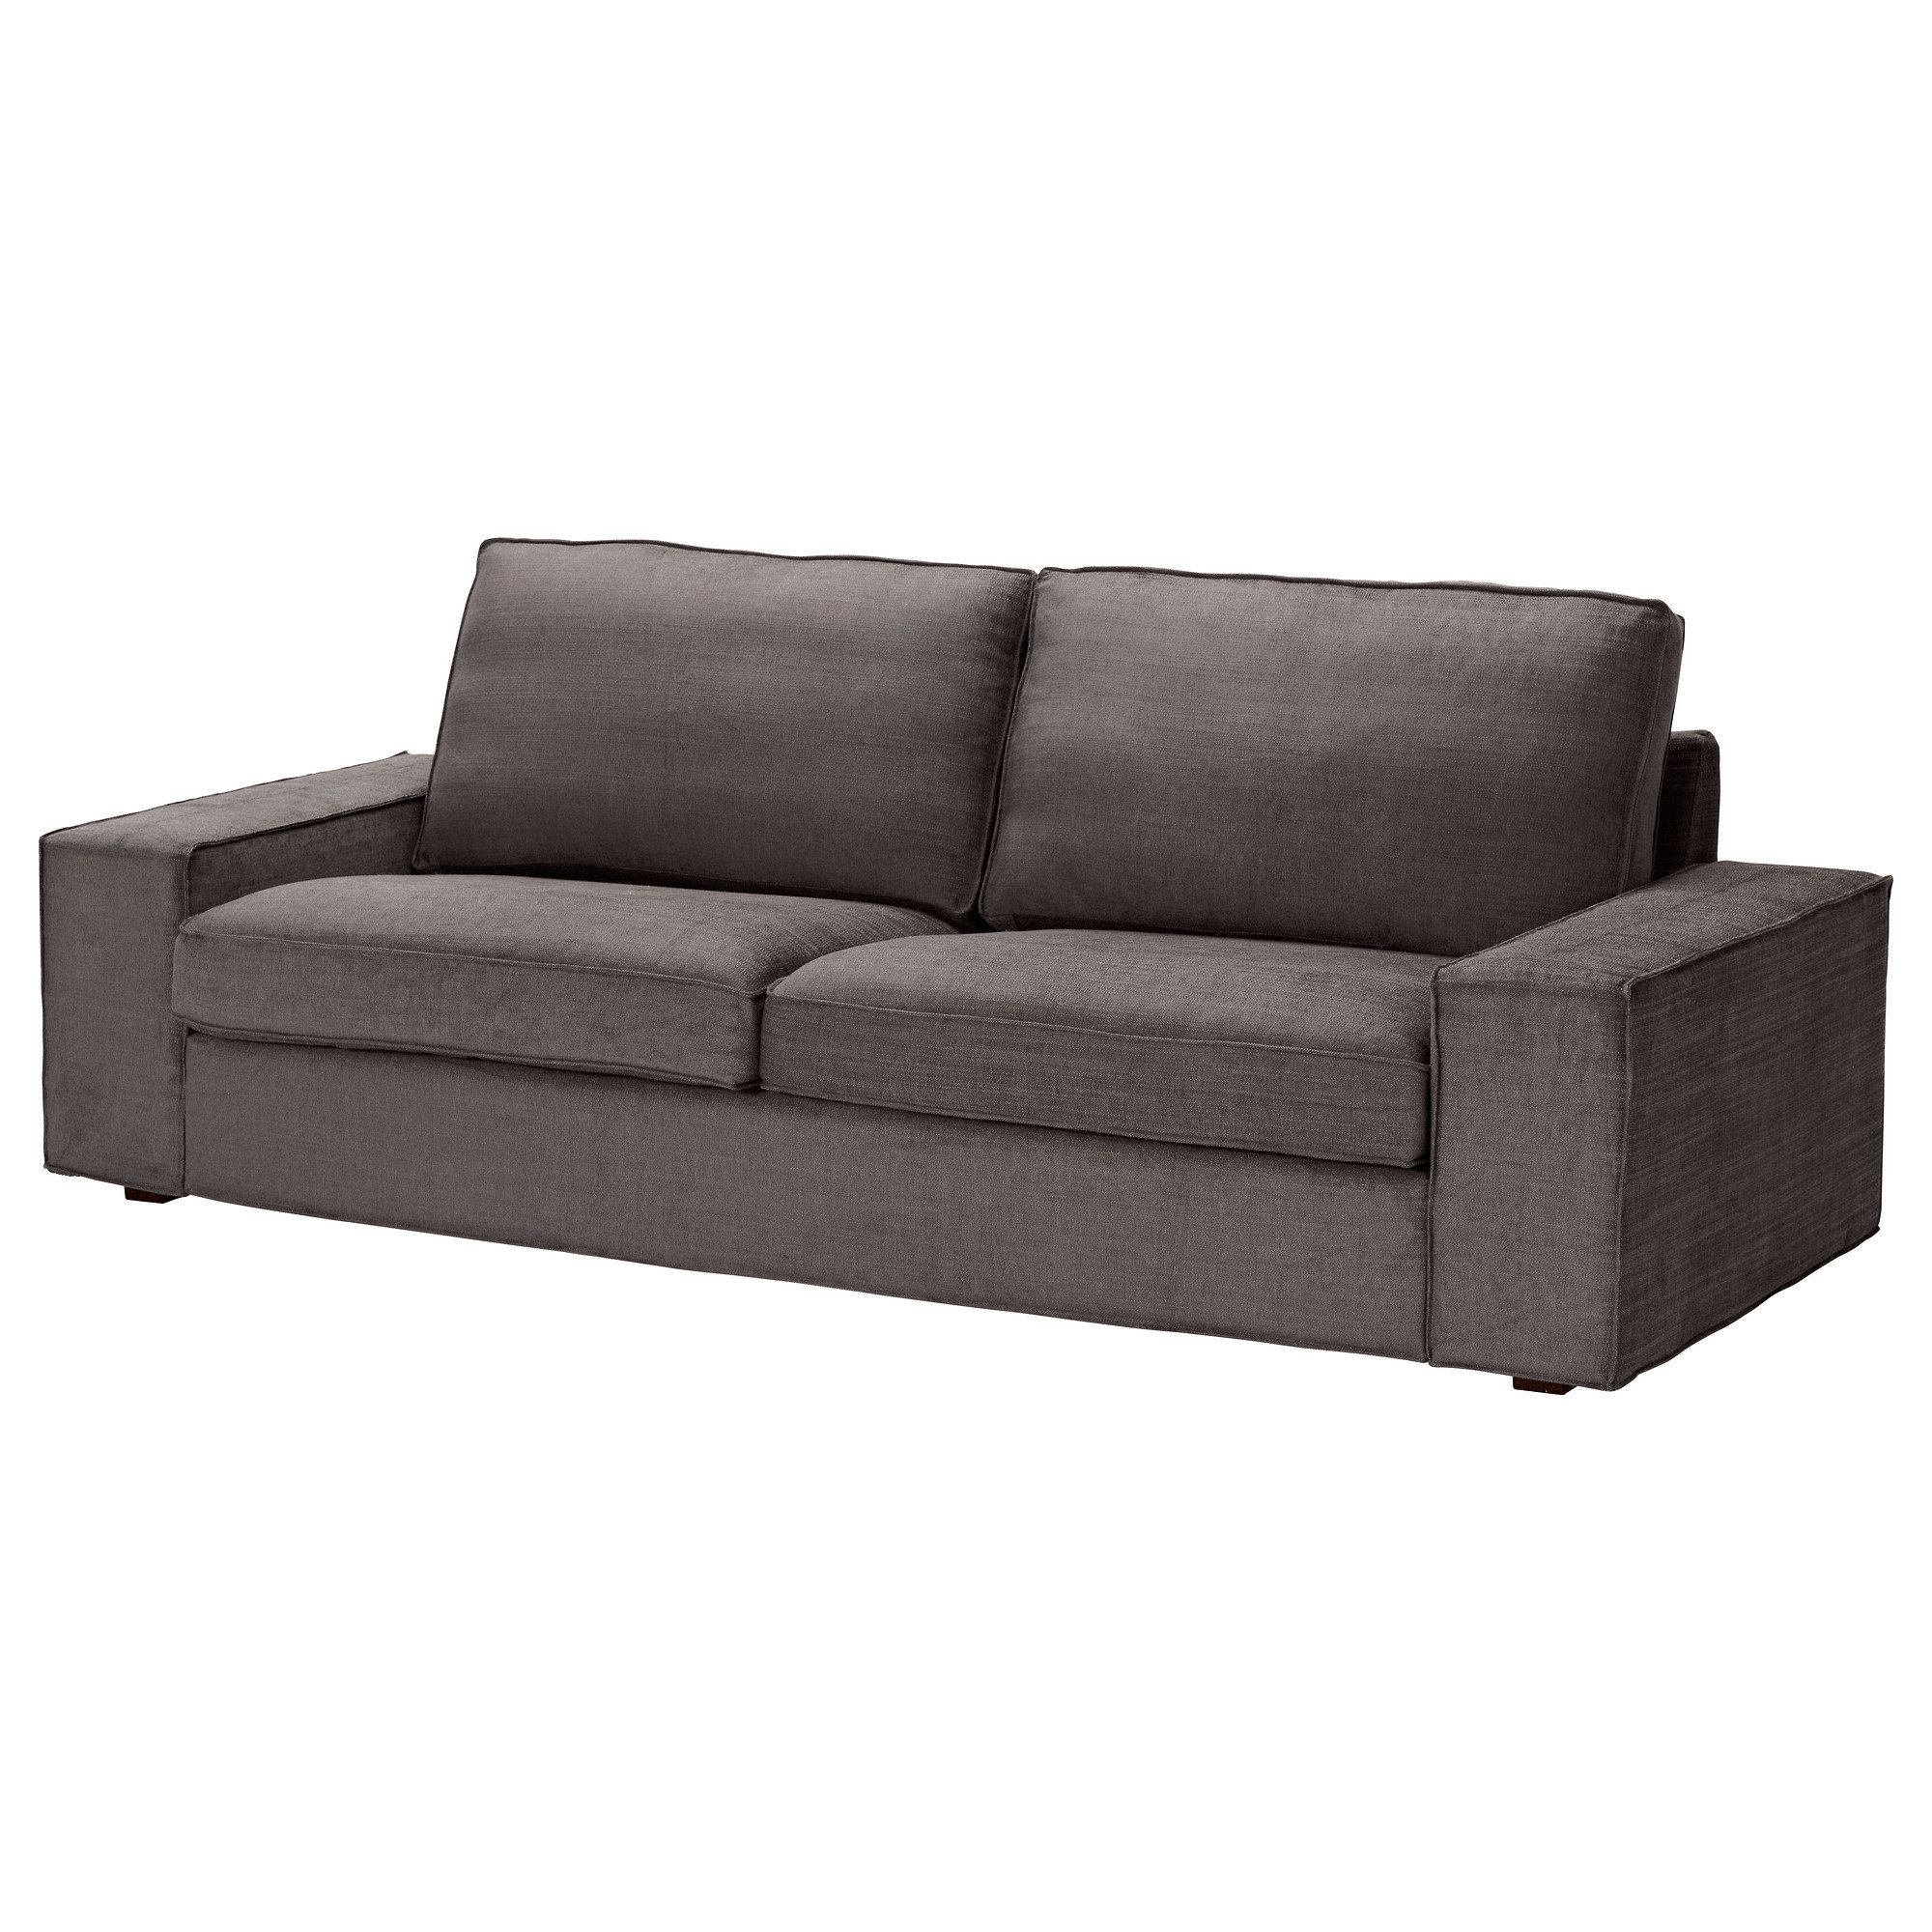 kivik sofa tullinge gray brown ikea from ikea